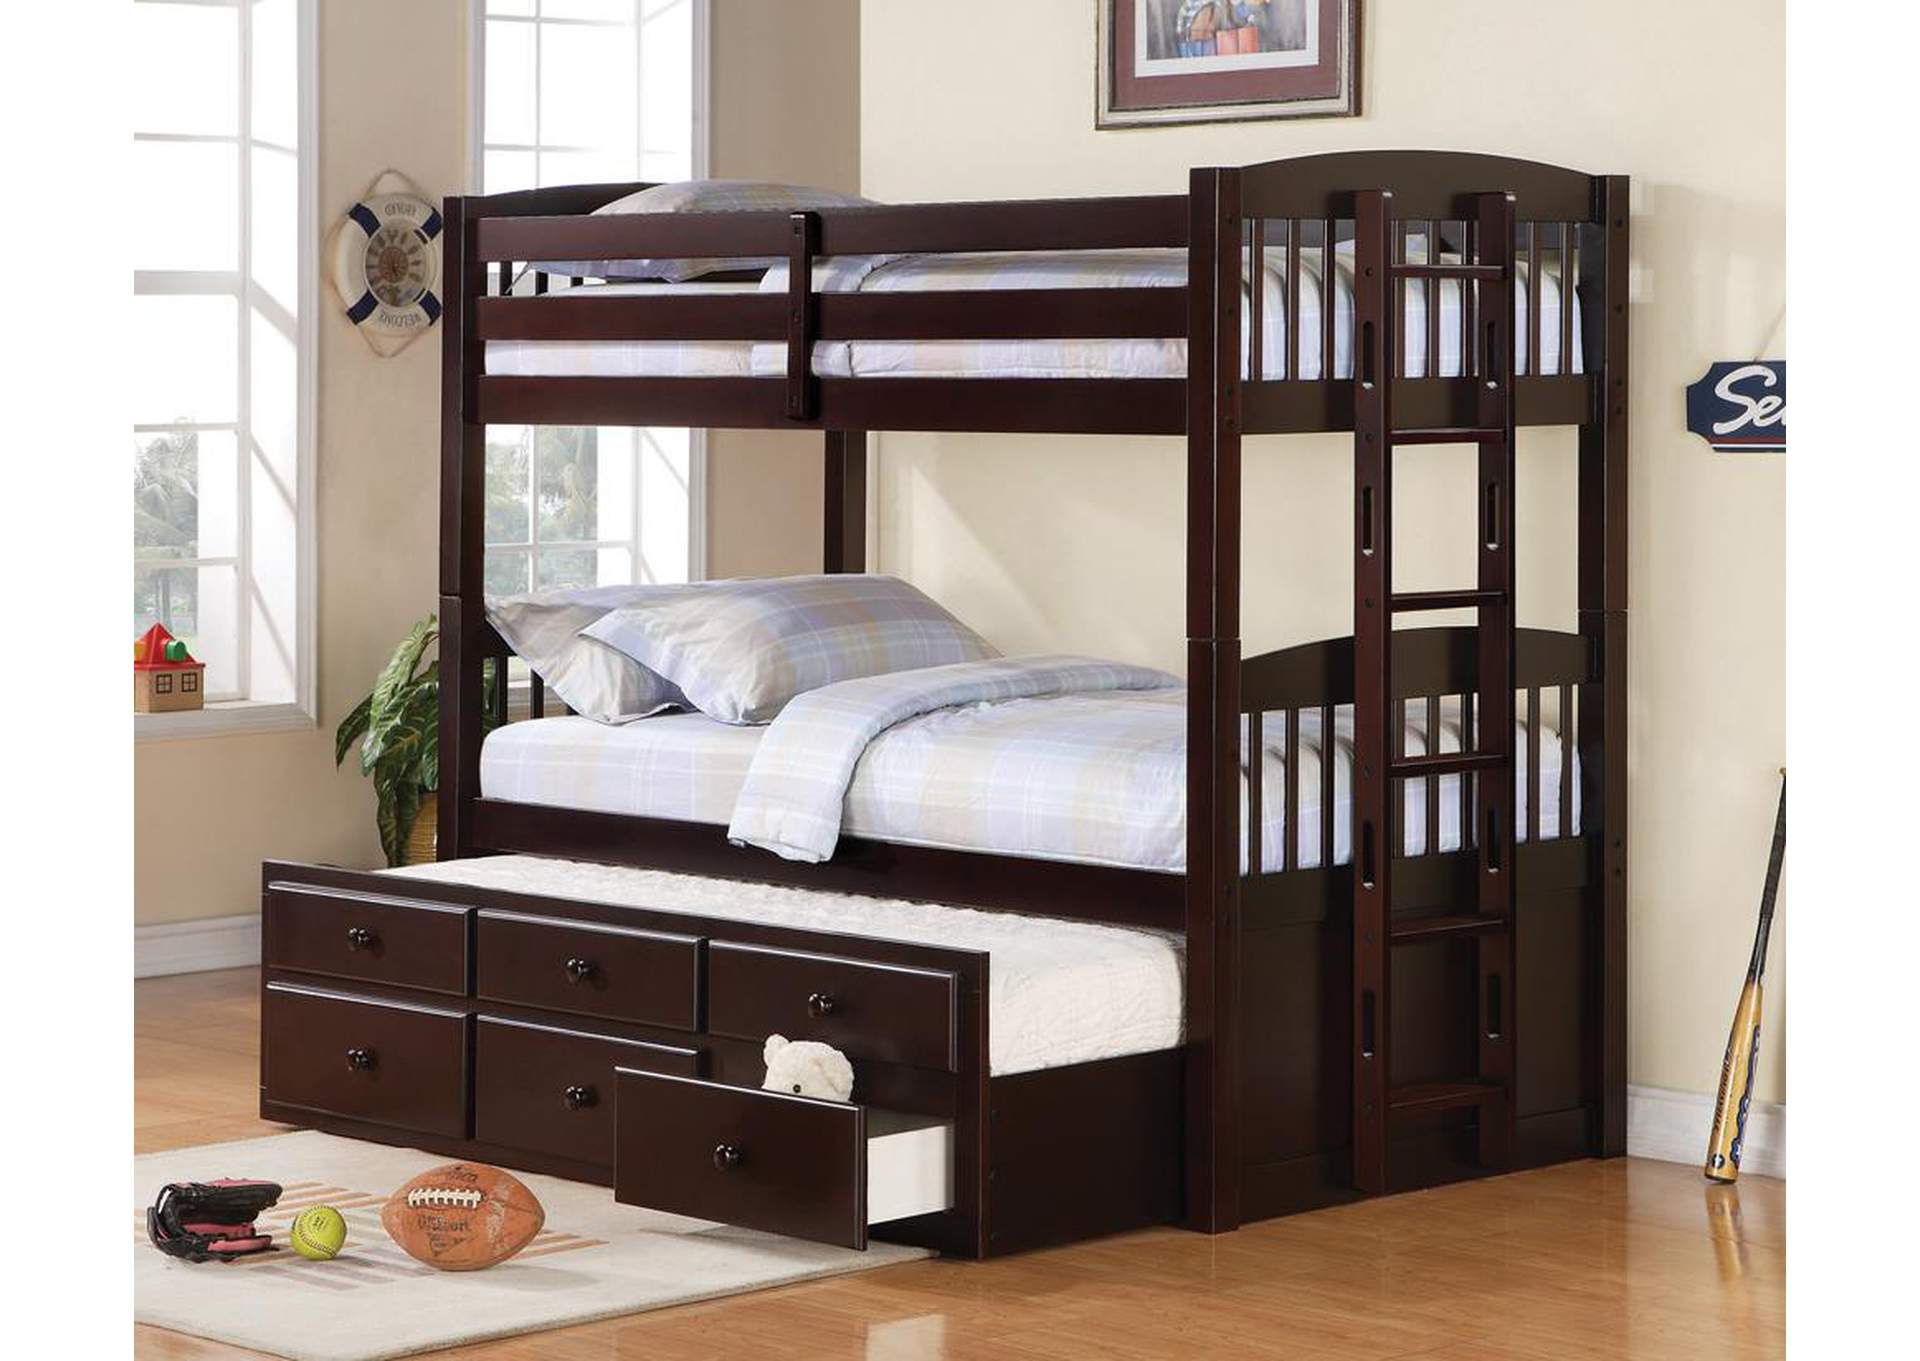 Logan Cappuccino Twin/Twin Bunk Bed (No Underbed Storage),Coaster Furniture